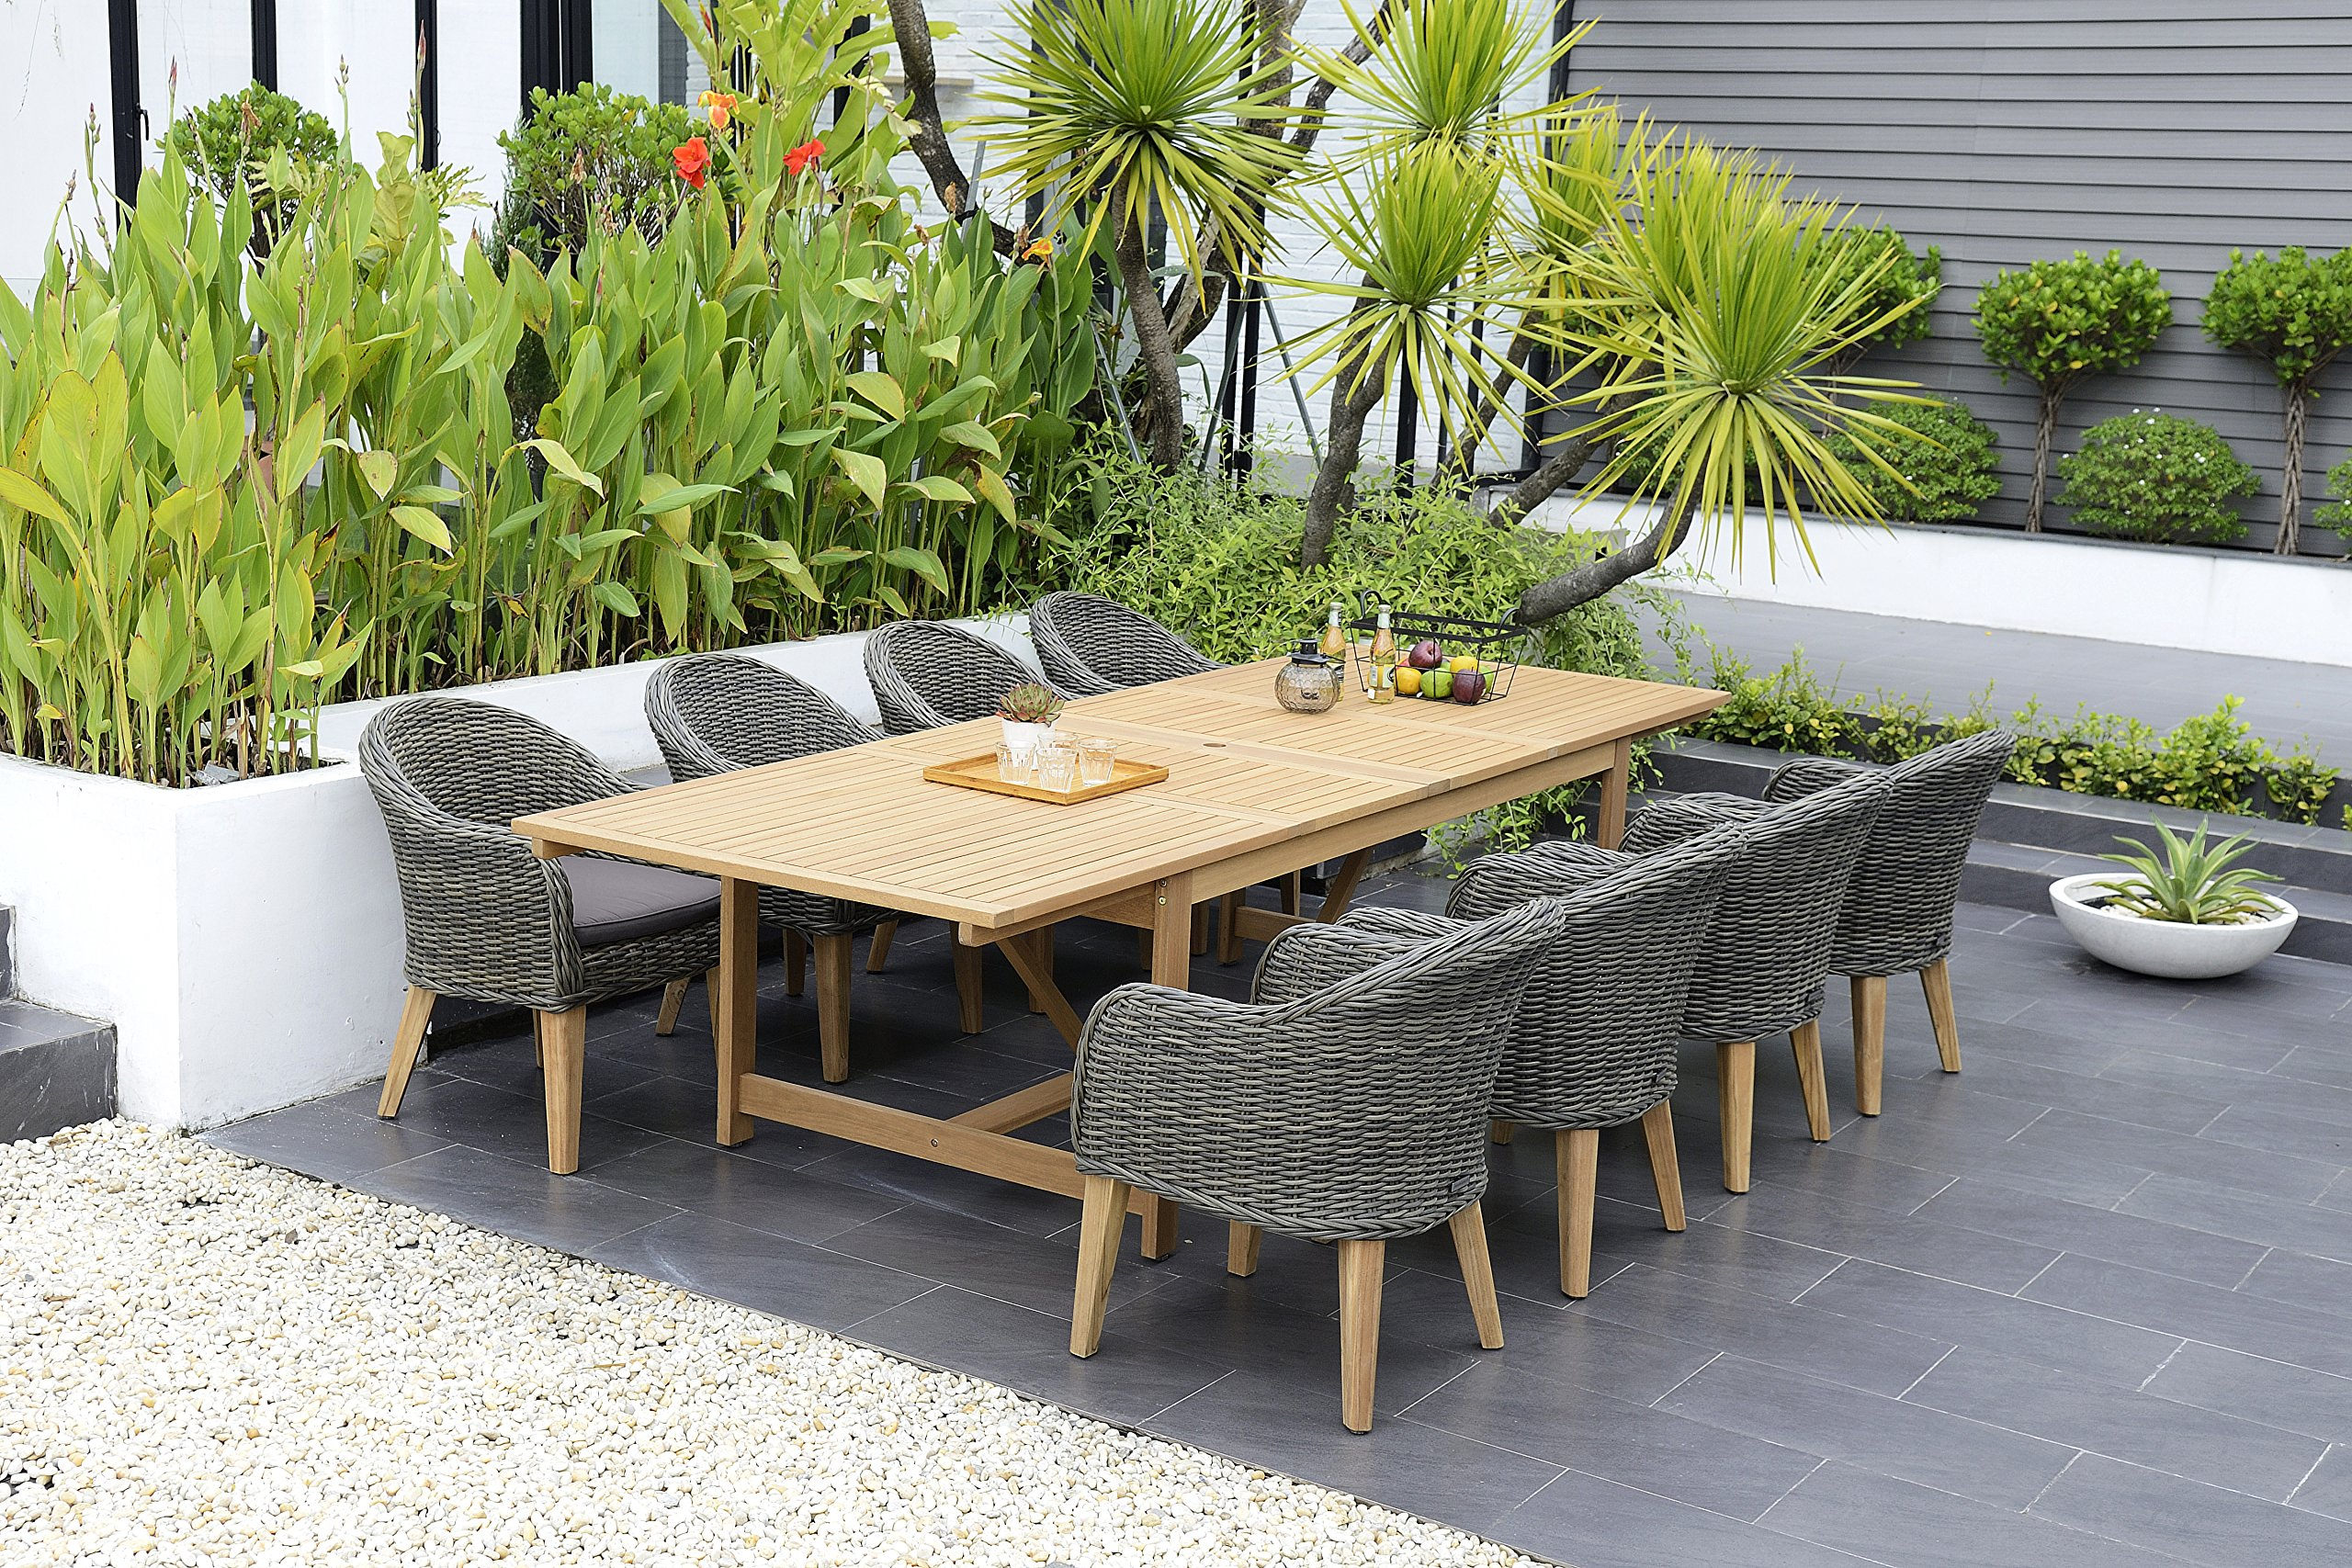 Brampton 9 Piece Outdoor Eucalyptus/Wicker Extendable Dining Set | Perfect for Patio | with Teak Finish, Brown - Perfect outdoors: 9 Piece patio Dining furniture set, ideal for patios, backyards, gardens, balconies, Poolside and more. Dimensions: Table Dimensions 79L x 42W x 30H Extended Length 118. Chair Dimensions 26L x 22W x 33H Seating Dimensions 20L x 19W x 17H. Table Material: 100% FSC certified High Quality Eucalyptus Wood (Eucalyptus Grandis) with teak finish. Chairs Material: Wicker seat, teak wood frame, and galvanized steel hardware. Its resistance to weather and UV radiation makes the set durable and enjoyable. - patio-furniture, dining-sets-patio-funiture, patio - A1aJlFdCs8L -